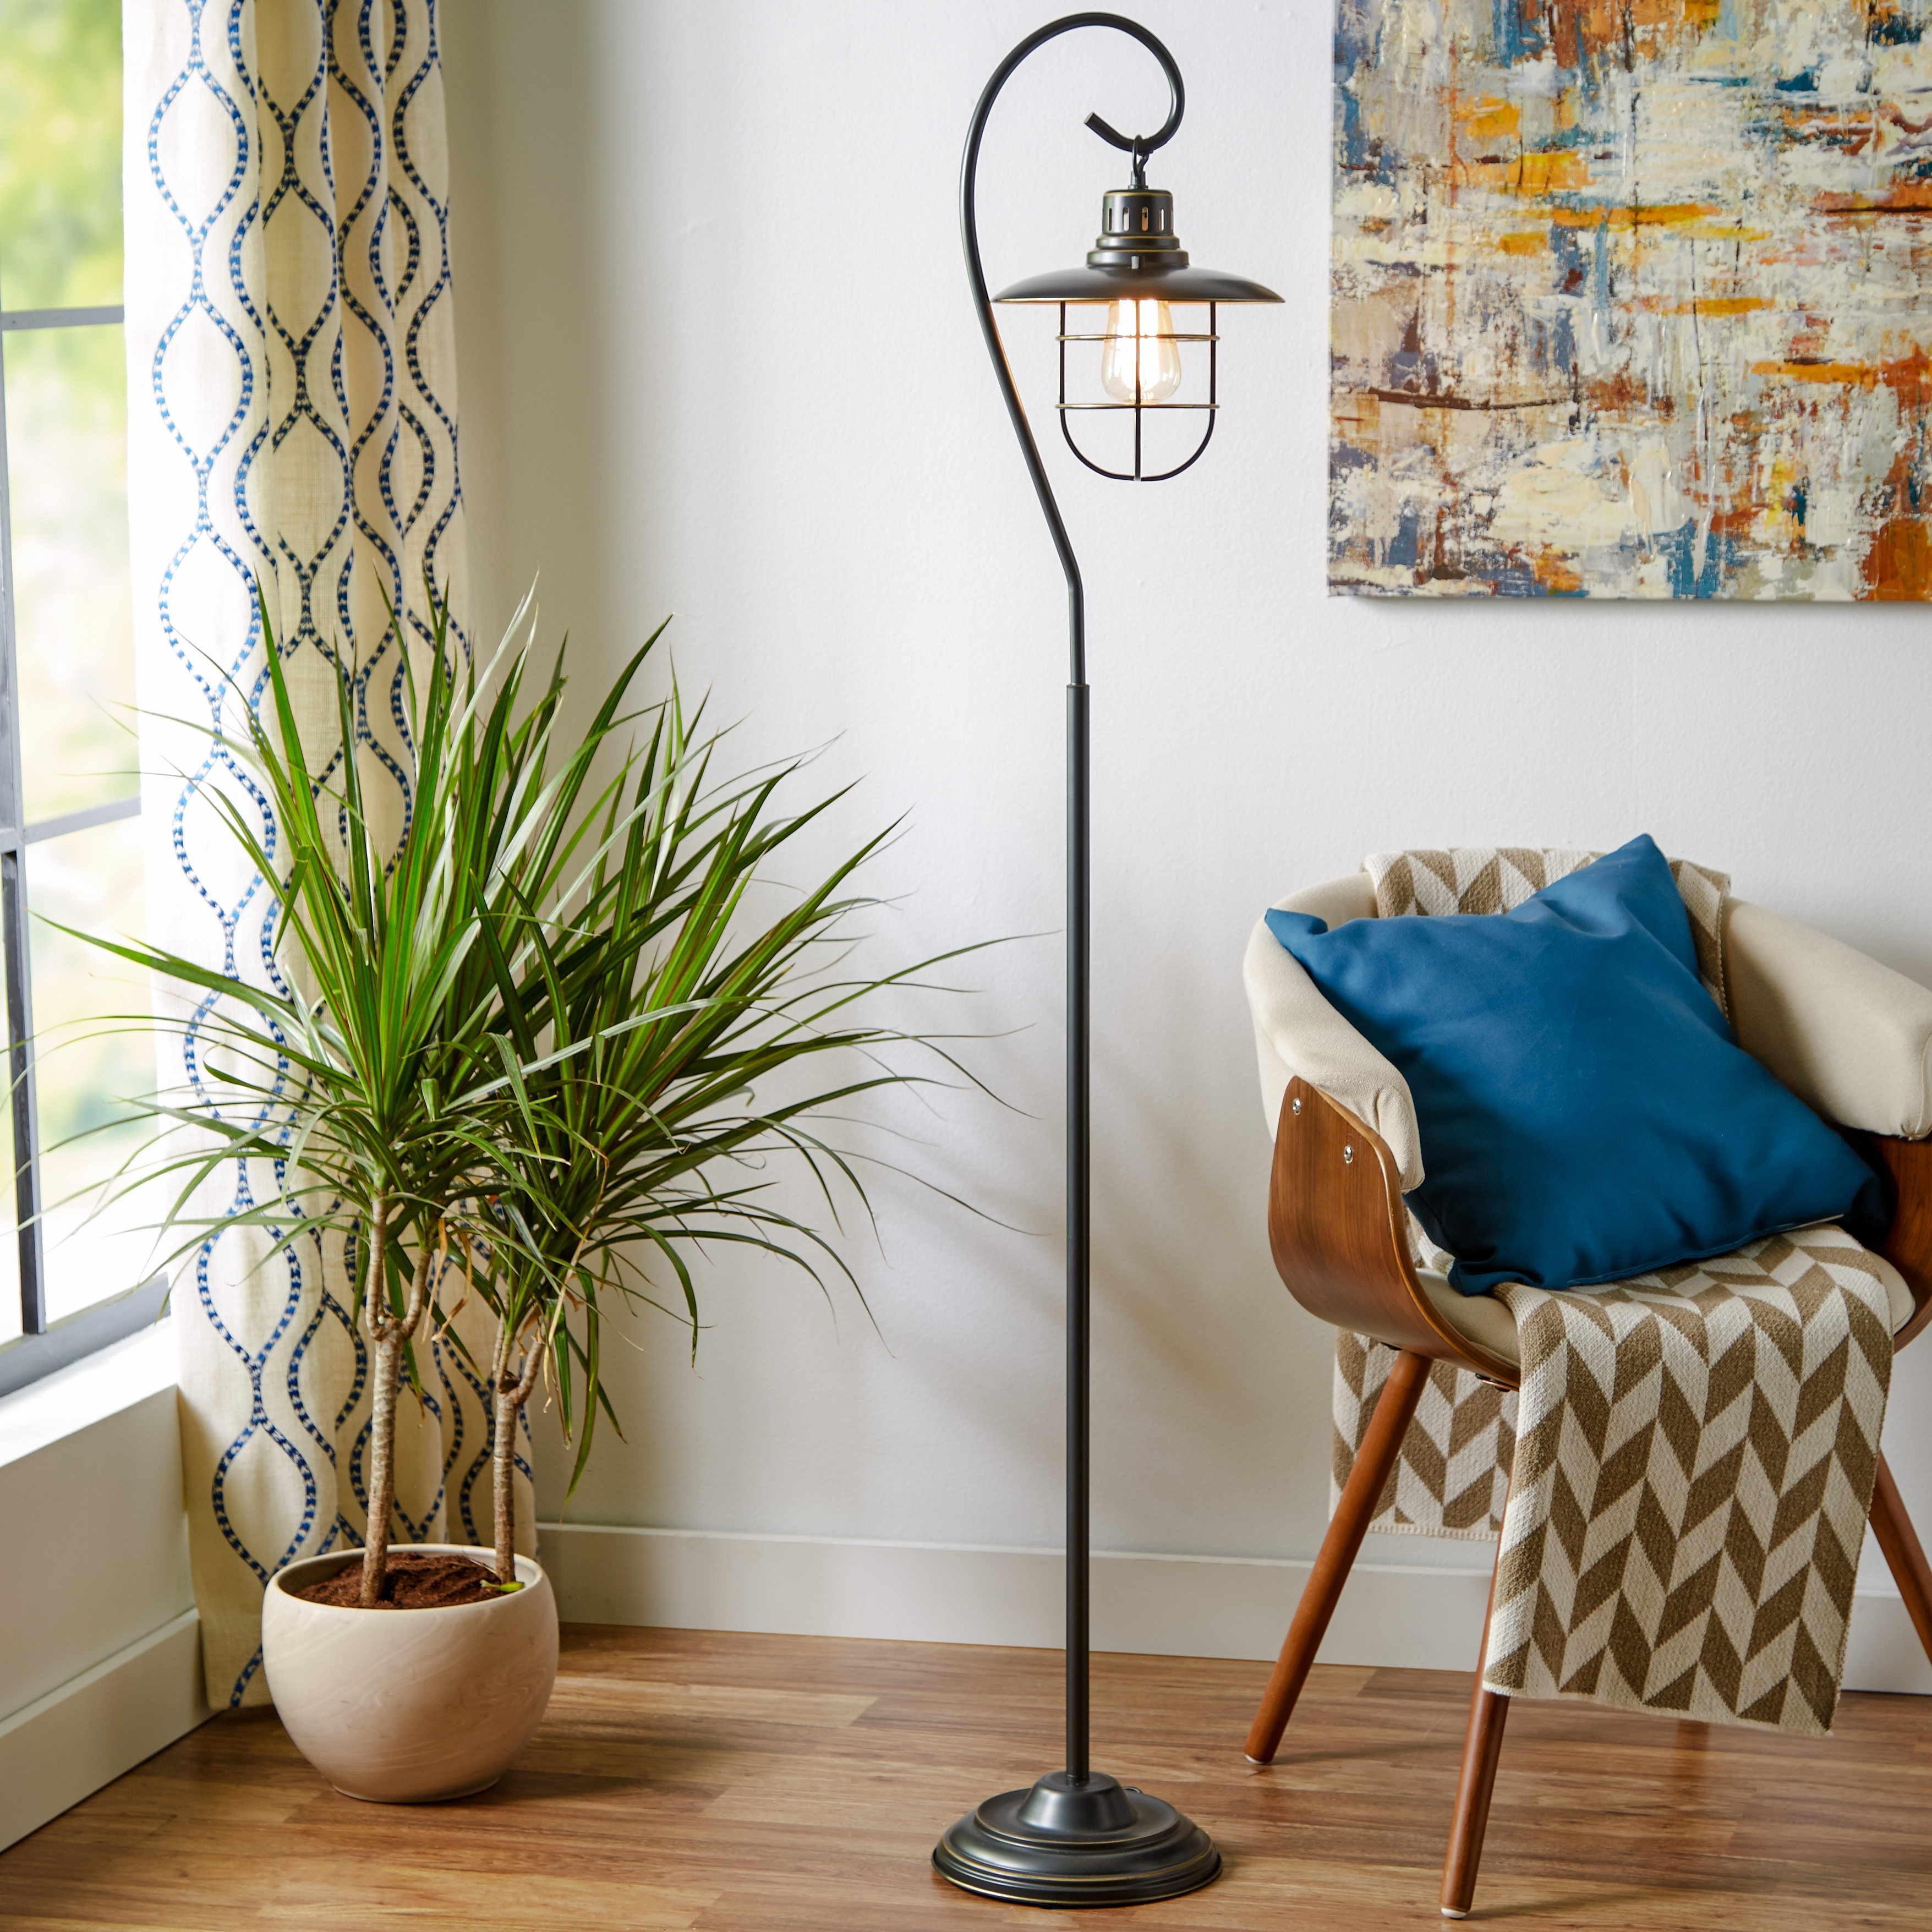 Widely Used Lamp : Best Of Couture Cienga Table Lamp Coastal Floor Lamps Floor Throughout Coastal Living Room Table Lamps (View 15 of 15)